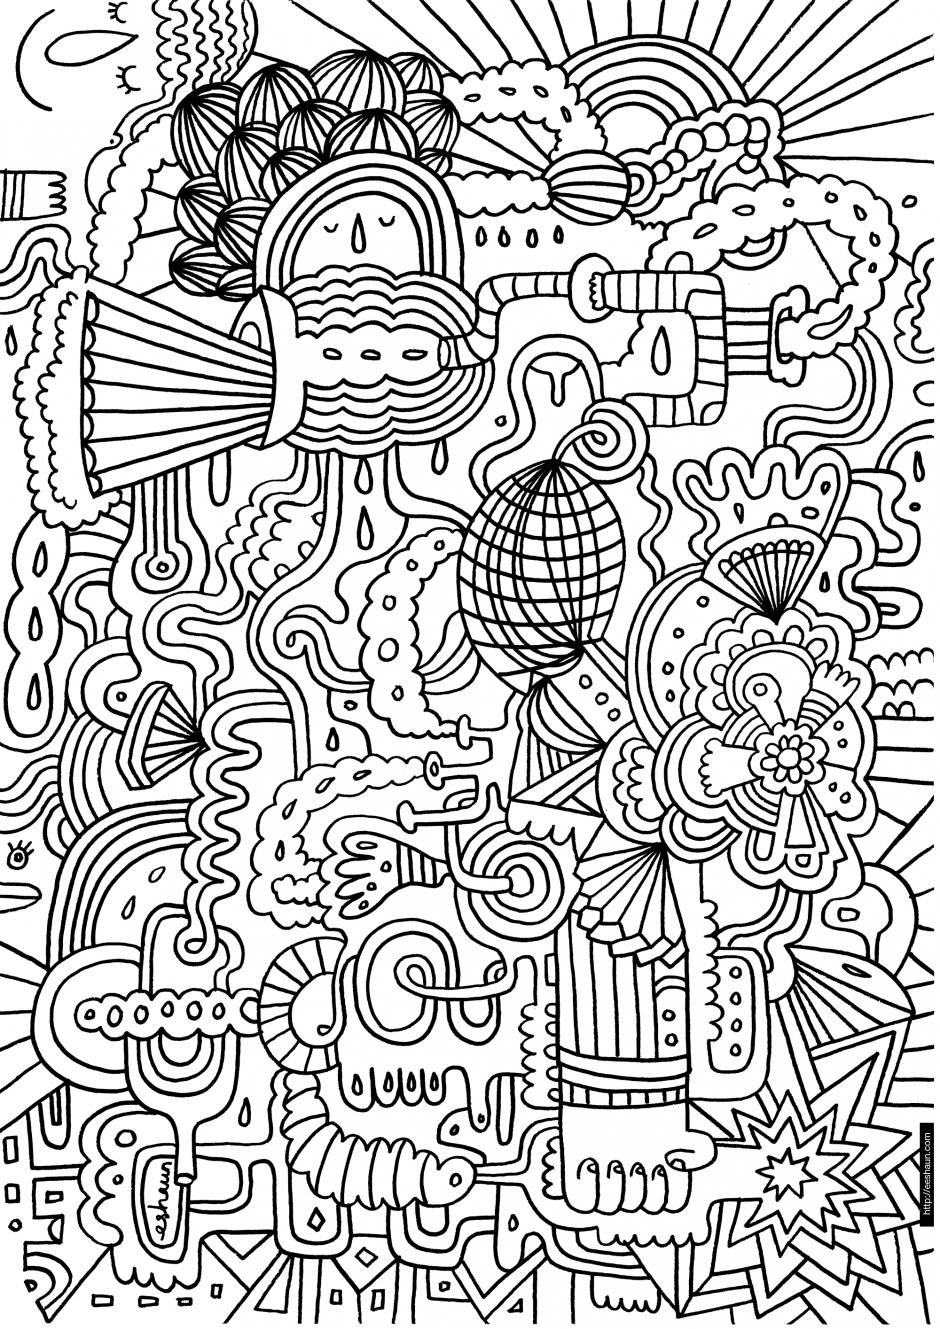 free teen coloring pages 10 free coloring pages for teens parents teen coloring free pages 1 1